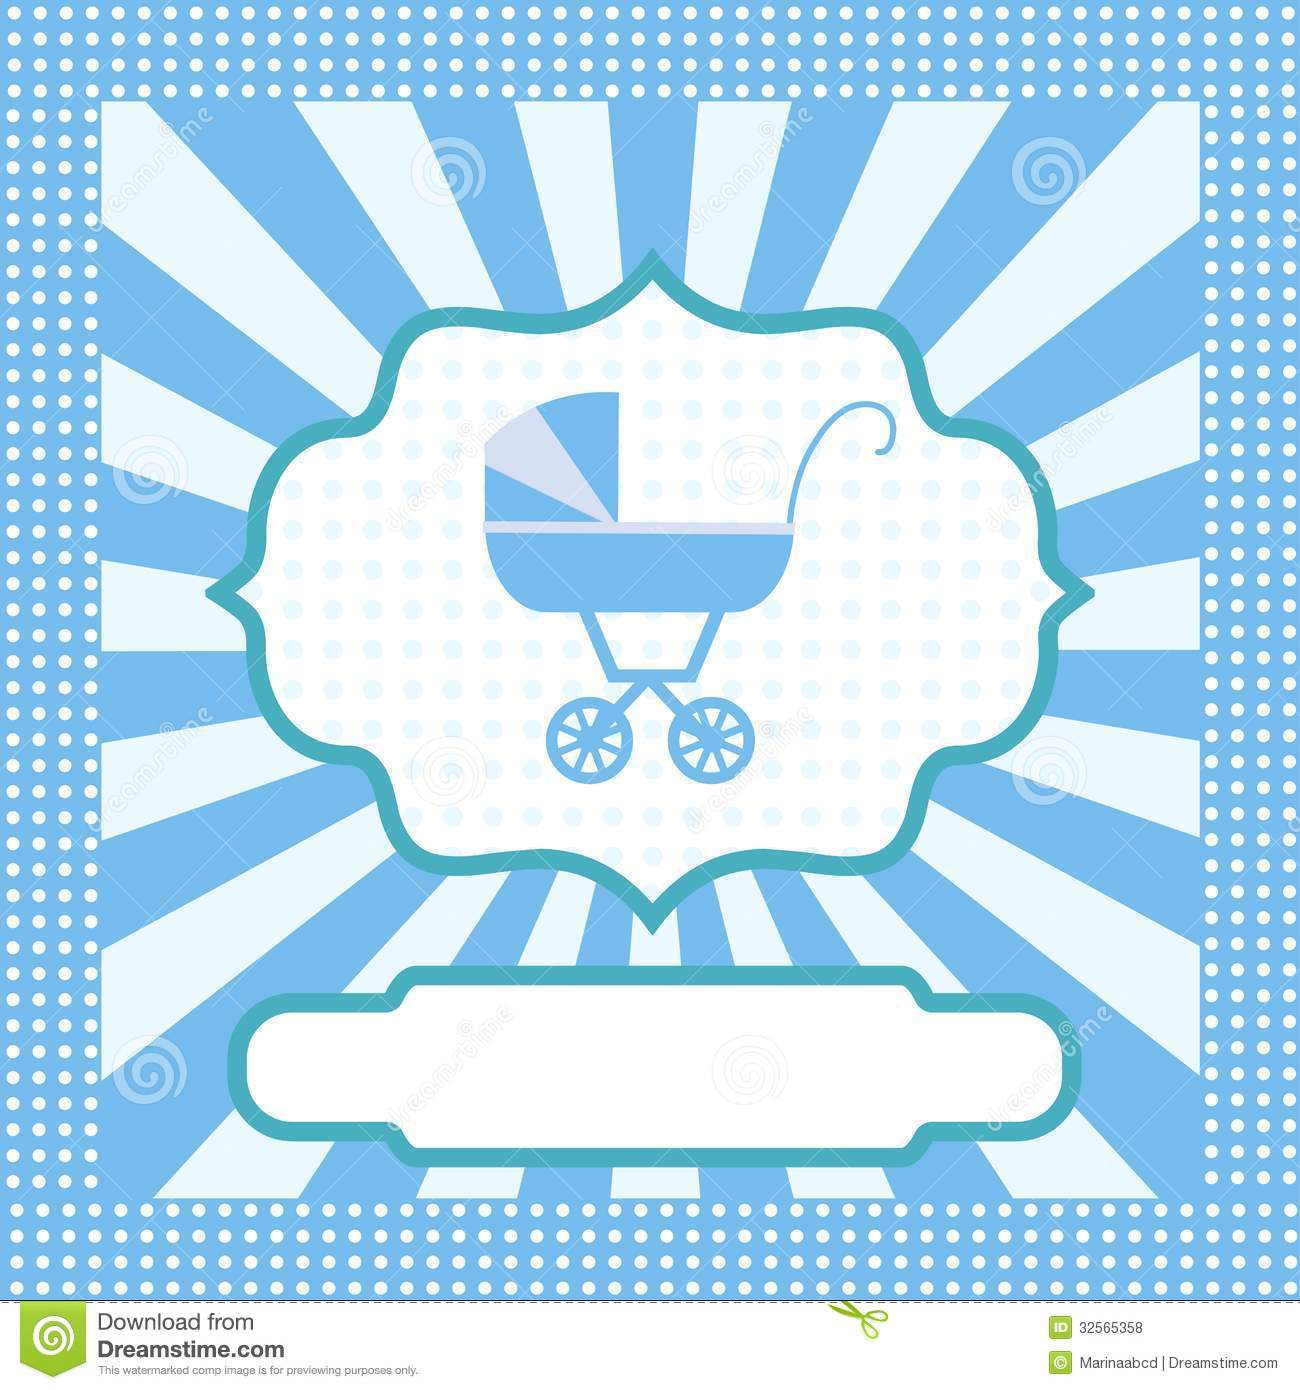 Choose your favorite Newborn Baby Boy design from our huge selection of greeting cards or create your own card today!